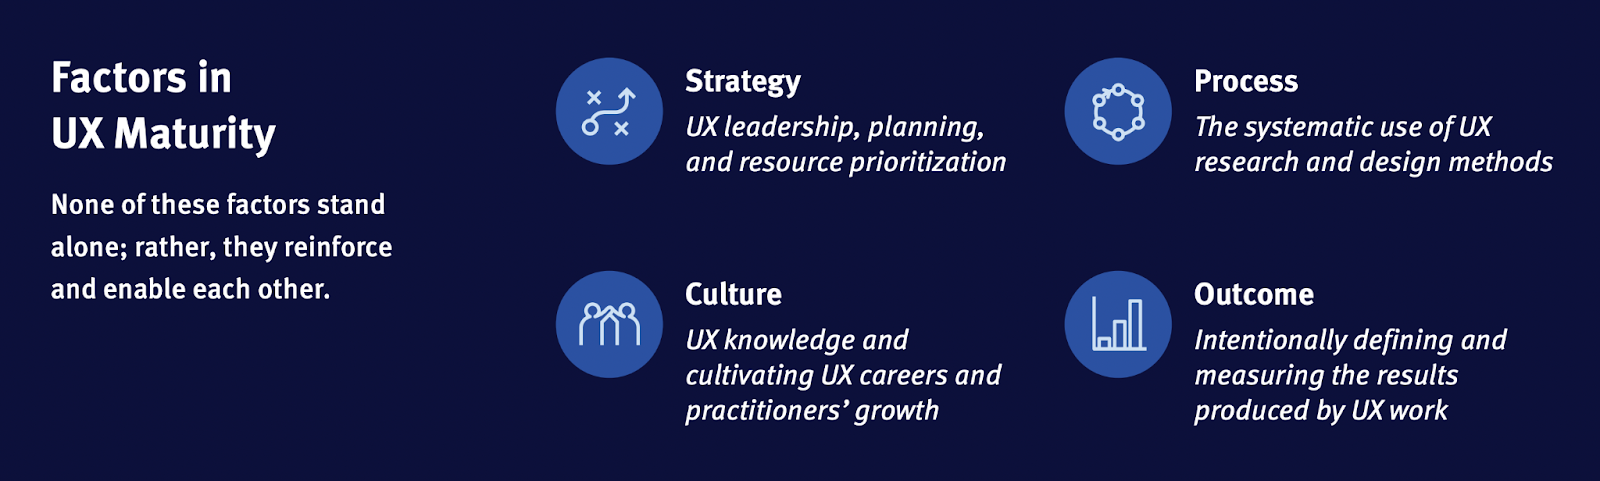 Factors in UX maturity: Strategy, Process, Culture, Outcome